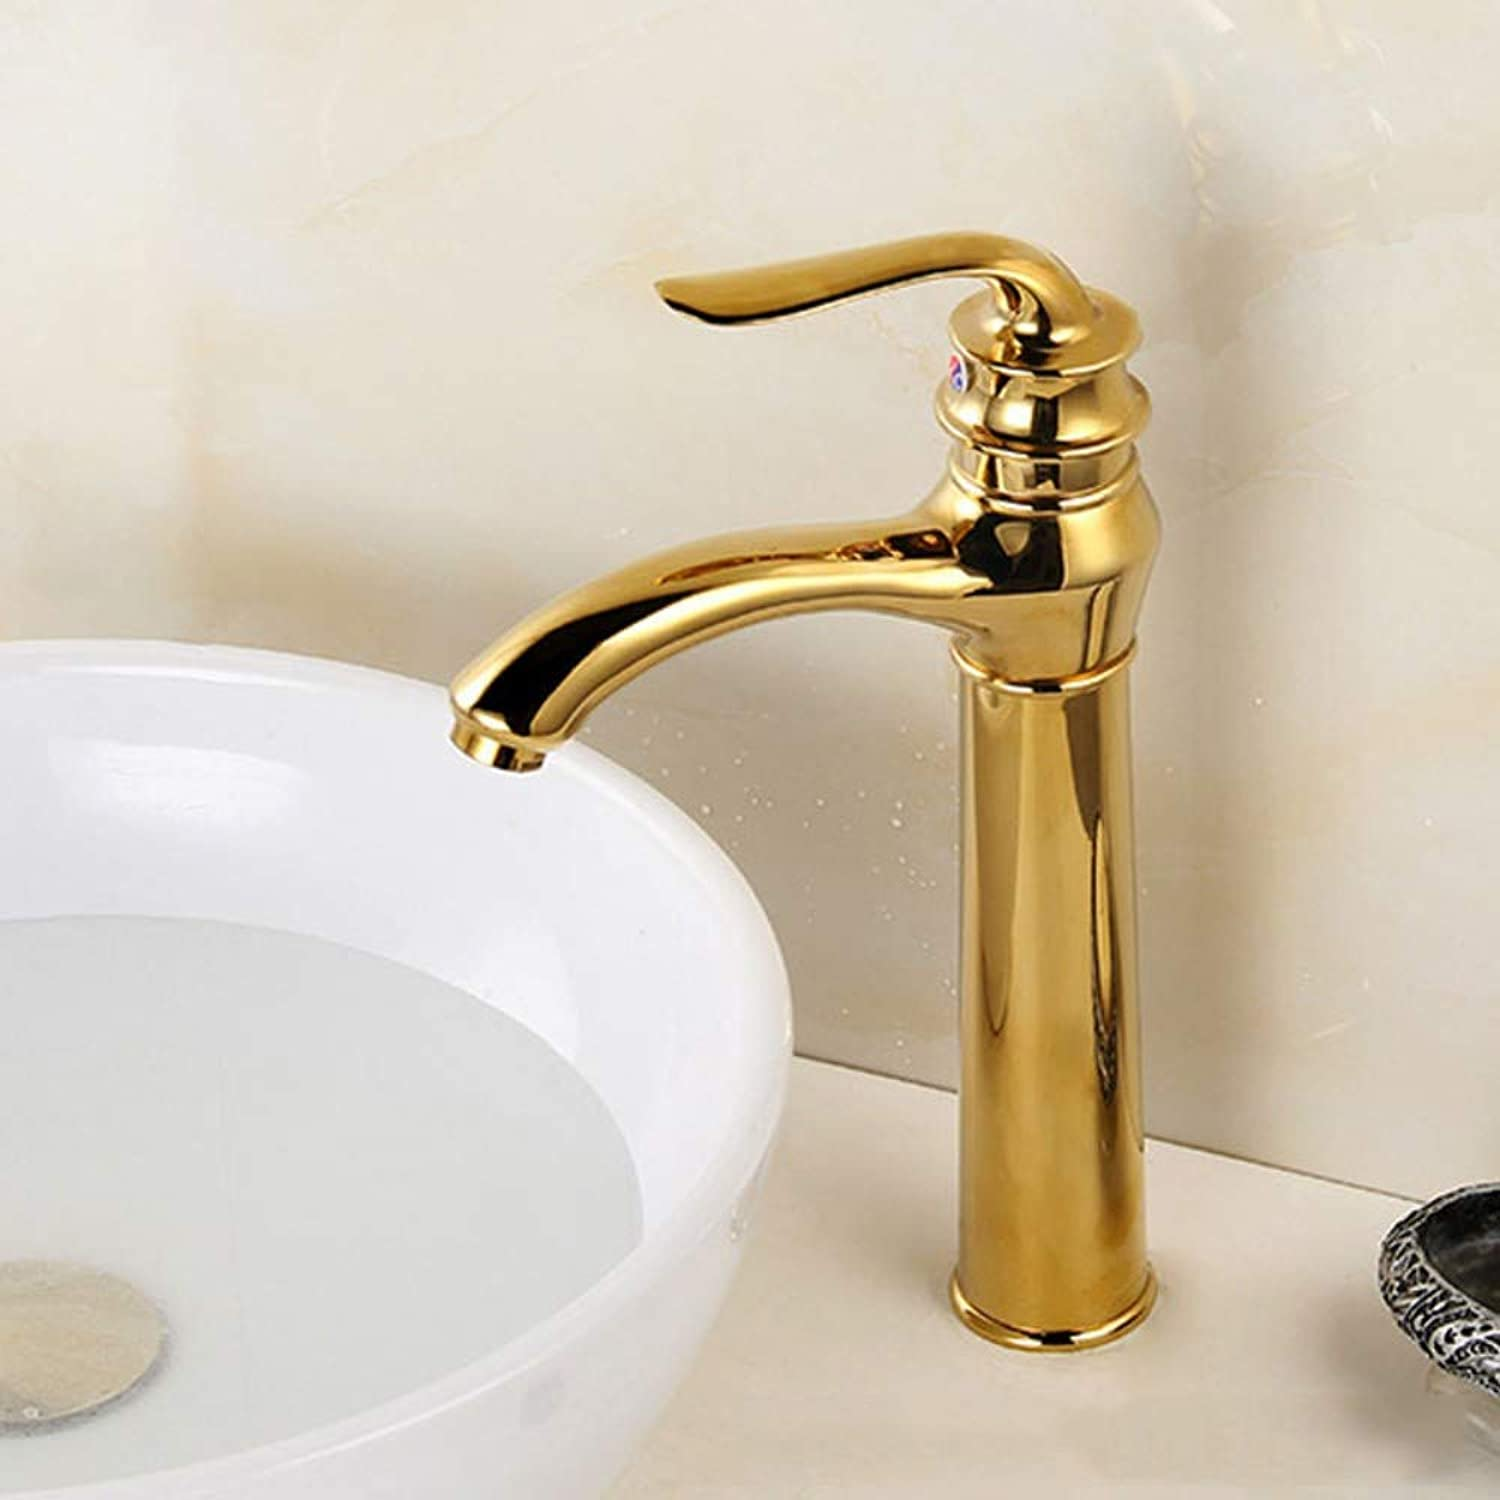 Above Counter Basin Faucet Basin gold Faucet Copper Hot and Cold Water Faucet High